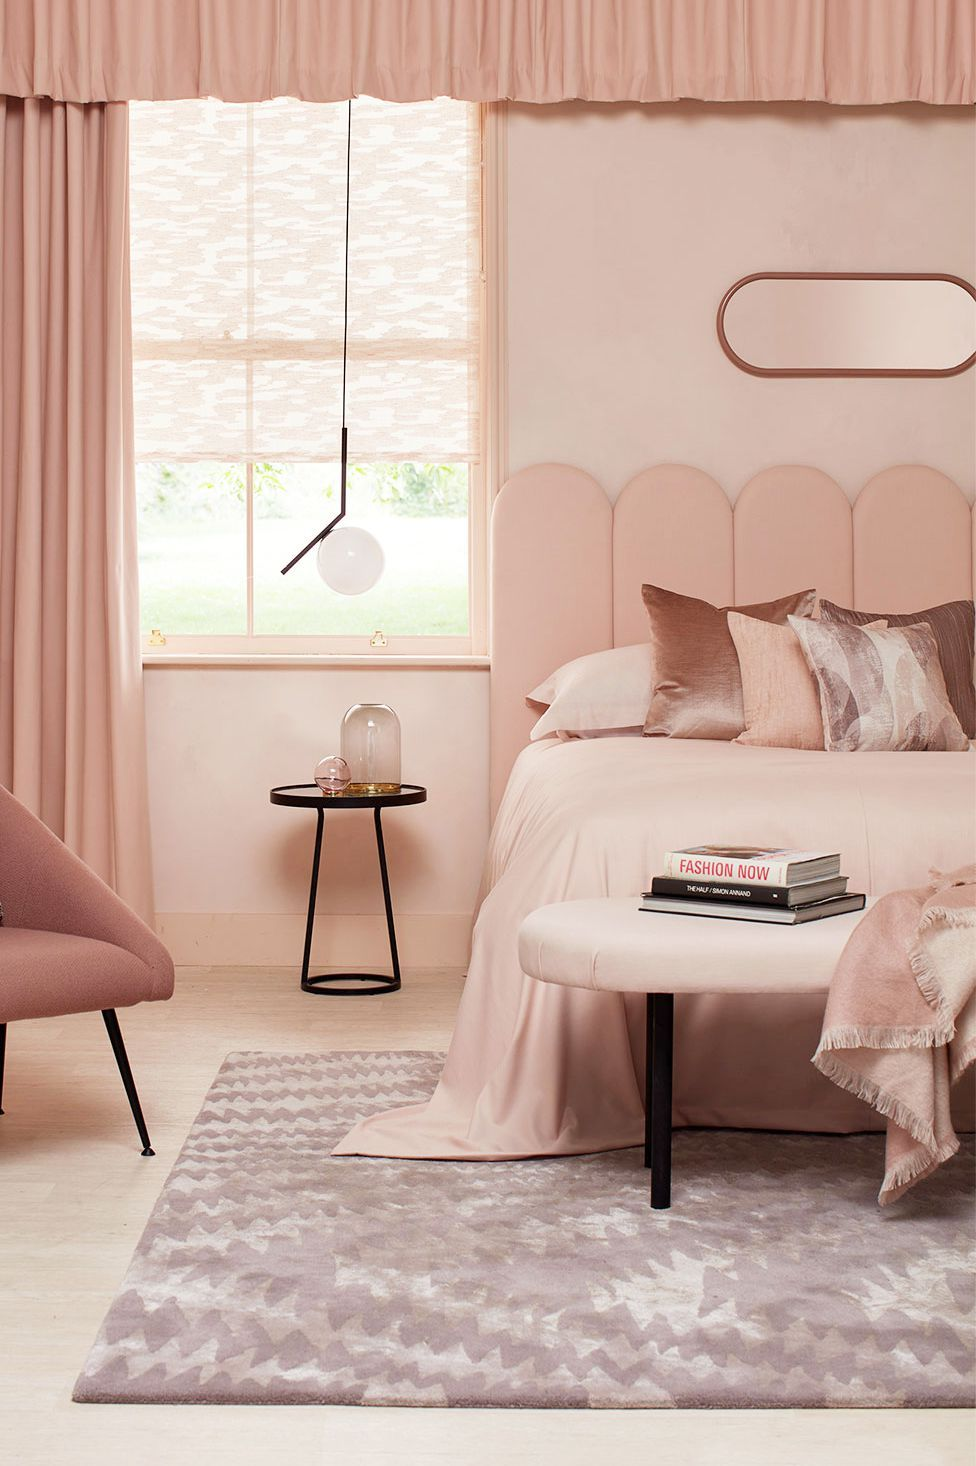 27 Lovely Bedroom Colors That Ll Make You Wake Up Happier Pink Bedroom Walls Best Bedroom Colors Pink Bedrooms Master bedroom ideas pink